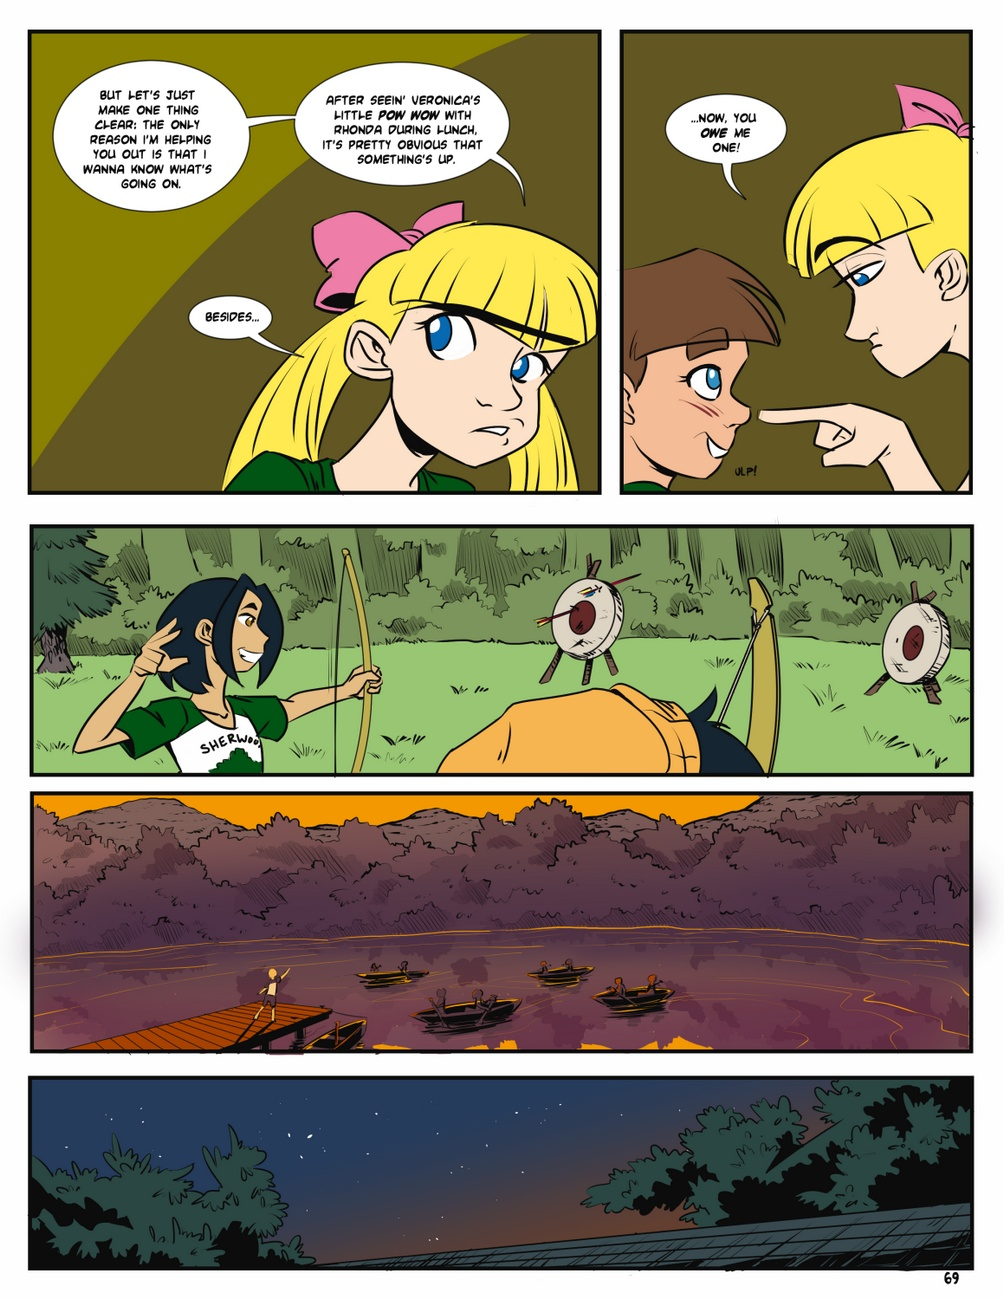 Camp Sherwood [Mr.D] (Ongoing) - part 5